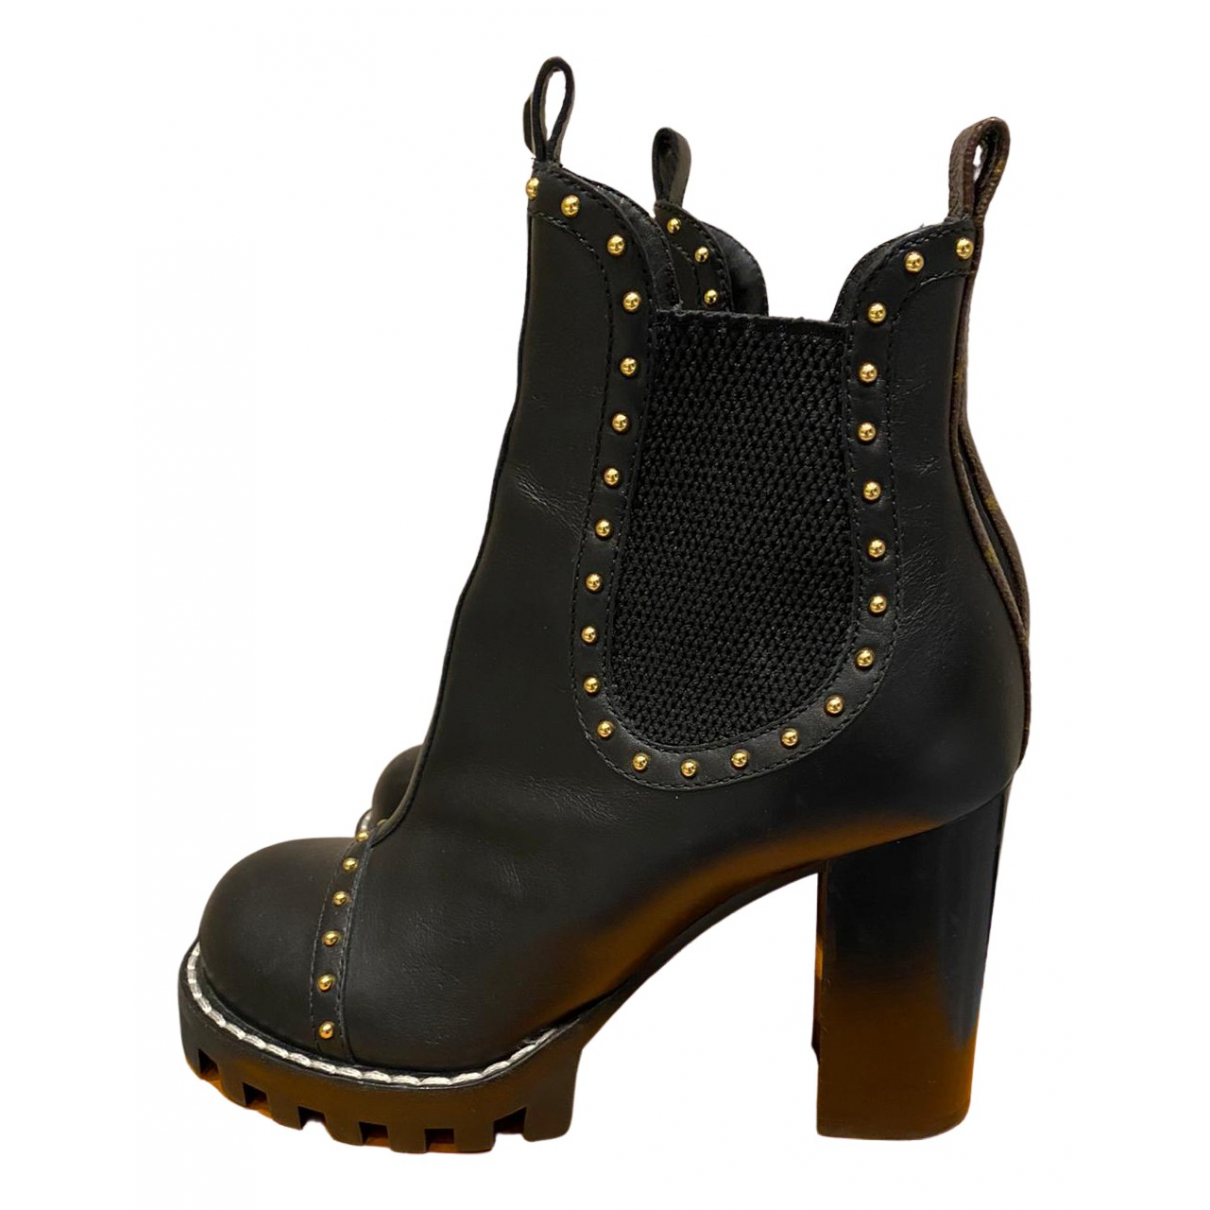 Louis Vuitton N Anthracite Leather Ankle boots for Women 37 EU